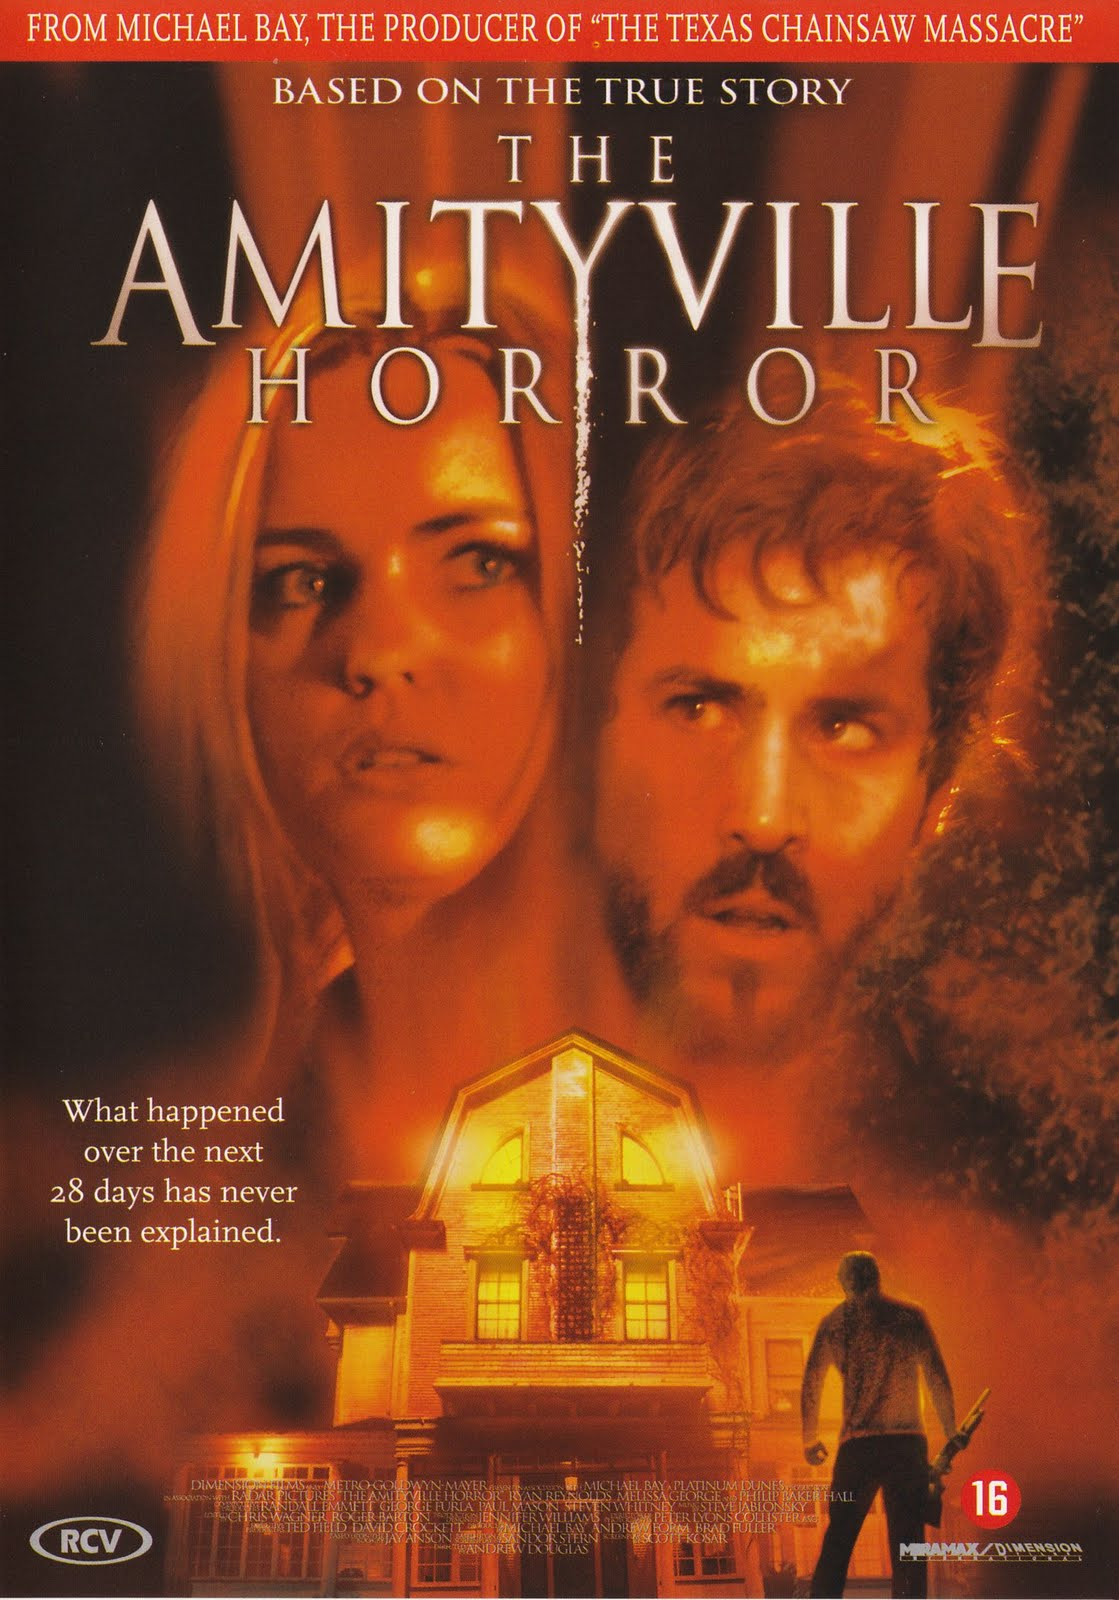 amityville horror movie 2005 ending relationship